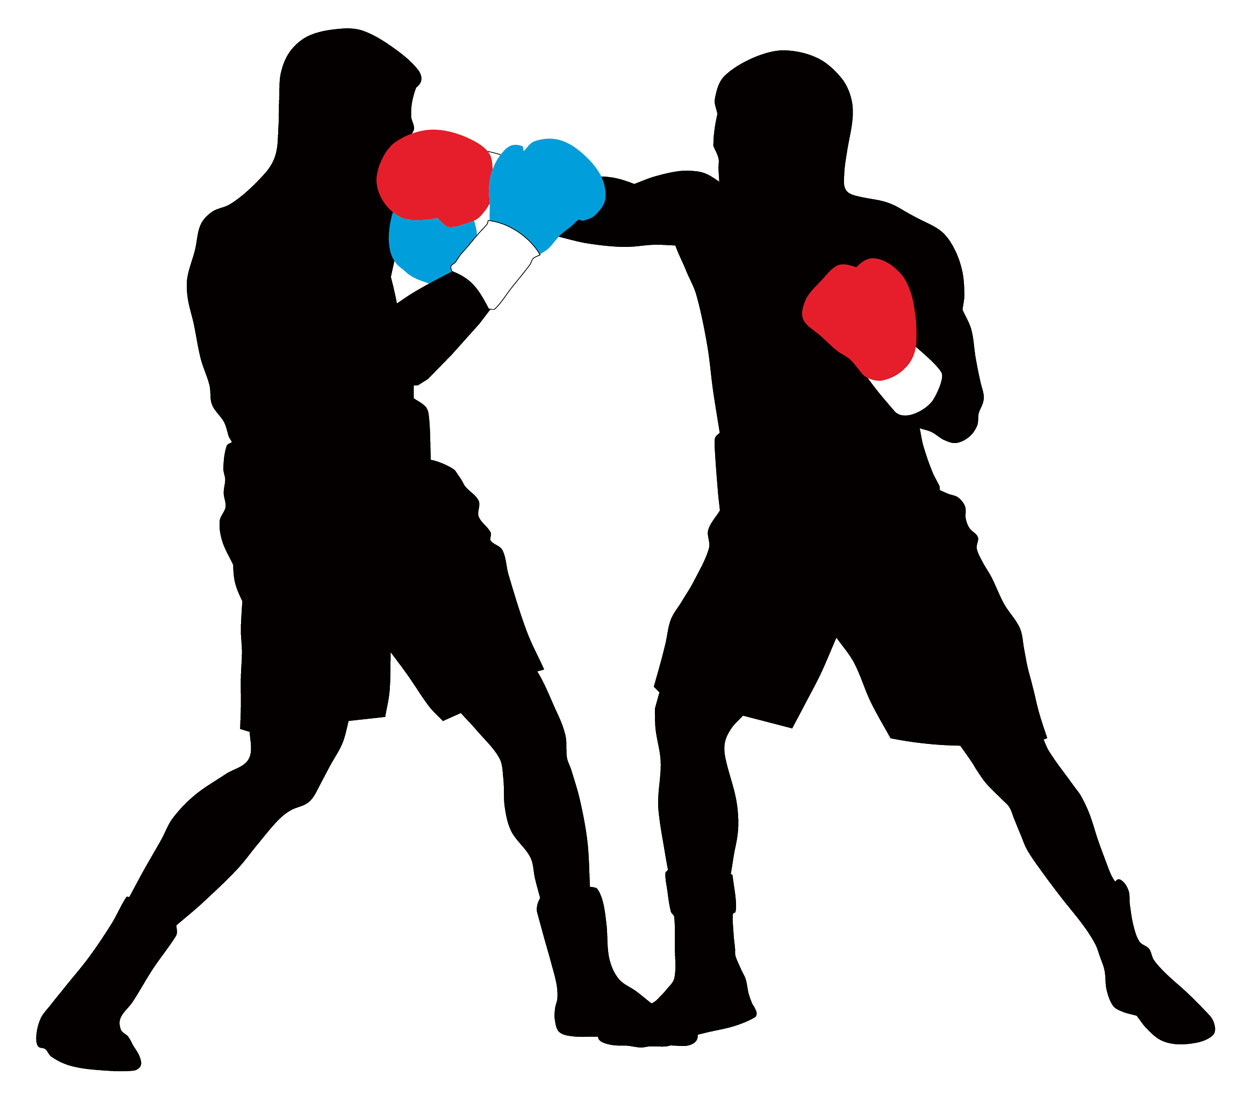 Boxer clipart boxing match Boxing clipart glove Free Art